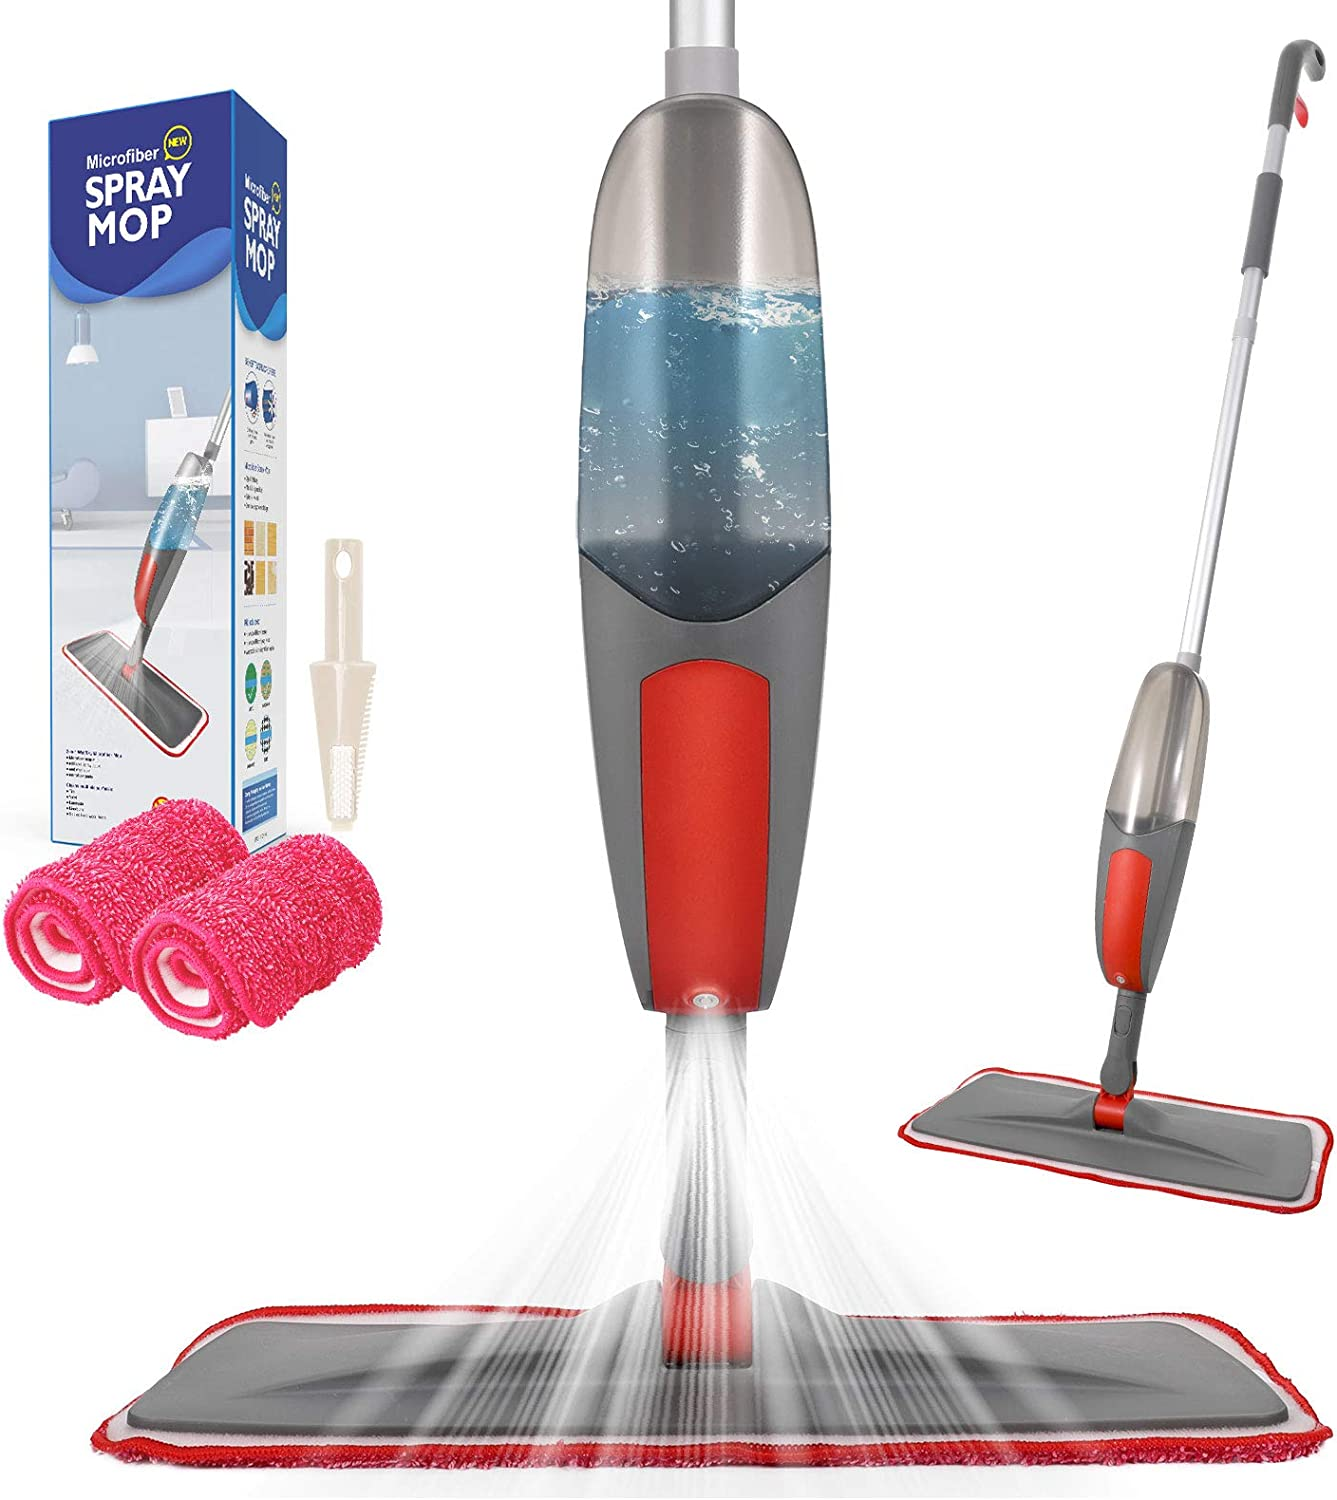 Spray Mop,Aiglam Floor Mop, 550ml Microfibre Mop with 2 Free Reusable Microfiber Pads Multi Mop with Refillable Bottle for Hardwood Floor, Wood, Laminate (Red)